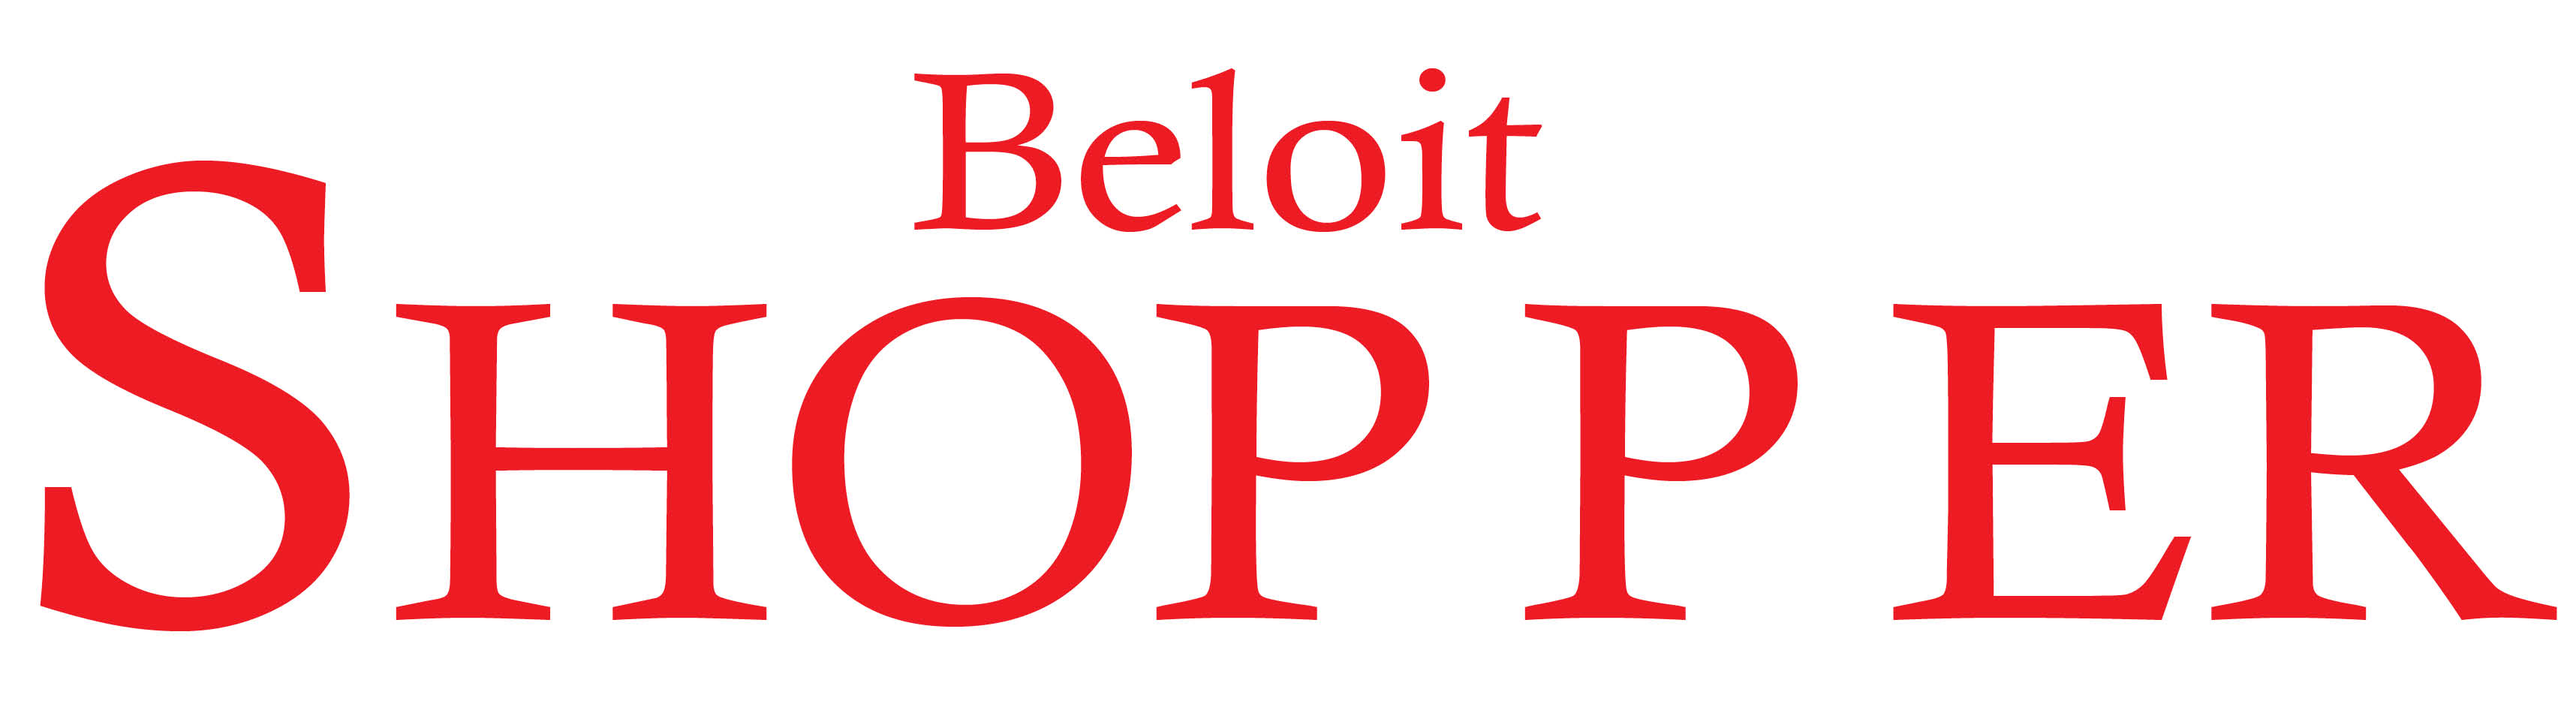 9/27/18 Beloit Shopper